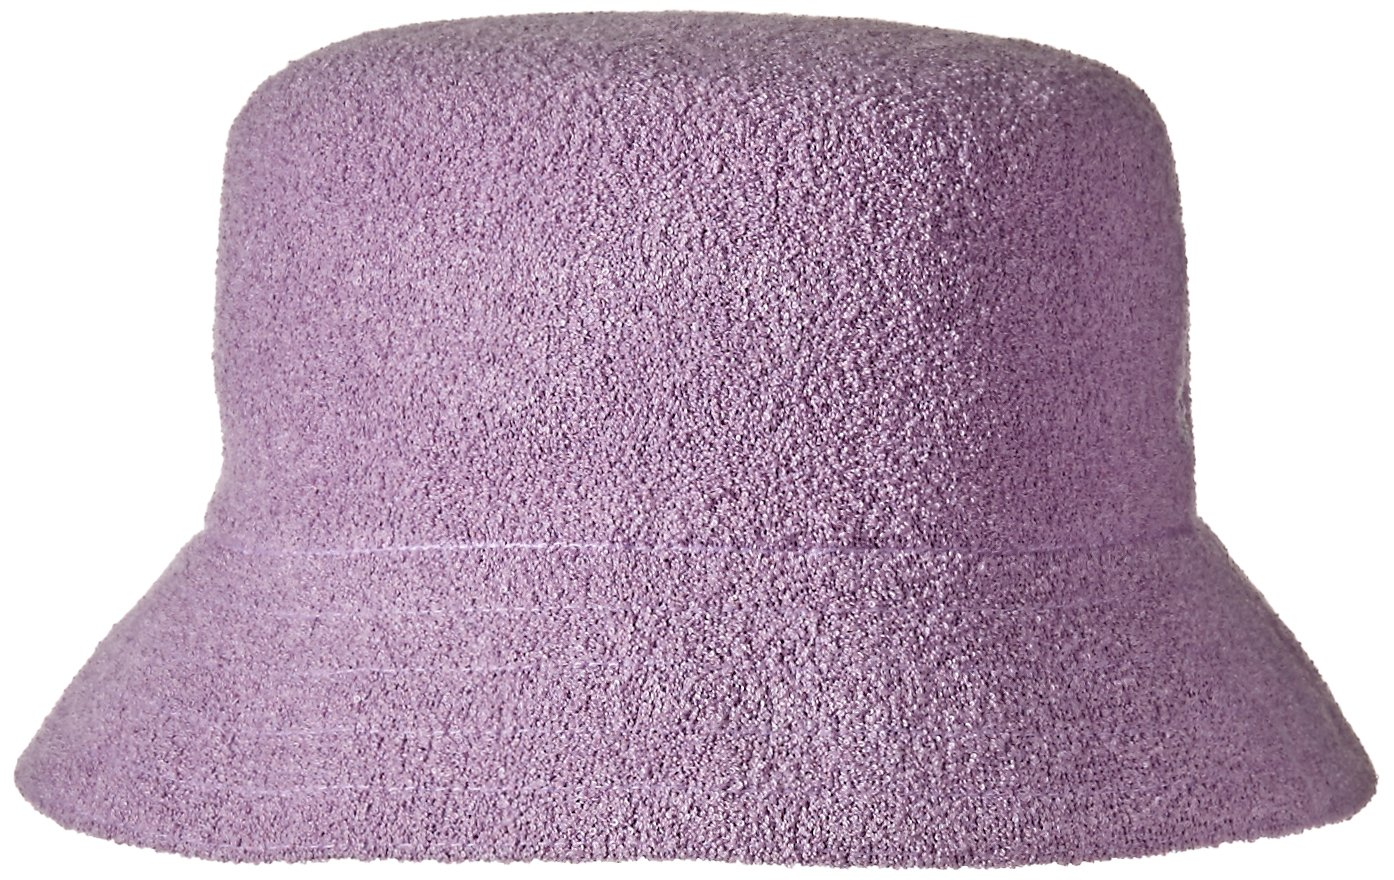 c3be28f9e Kangol Mens K3050ST Bermuda Bucket Hat Bucket Hat - Purple - X-Large:  Amazon.com.au: Fashion